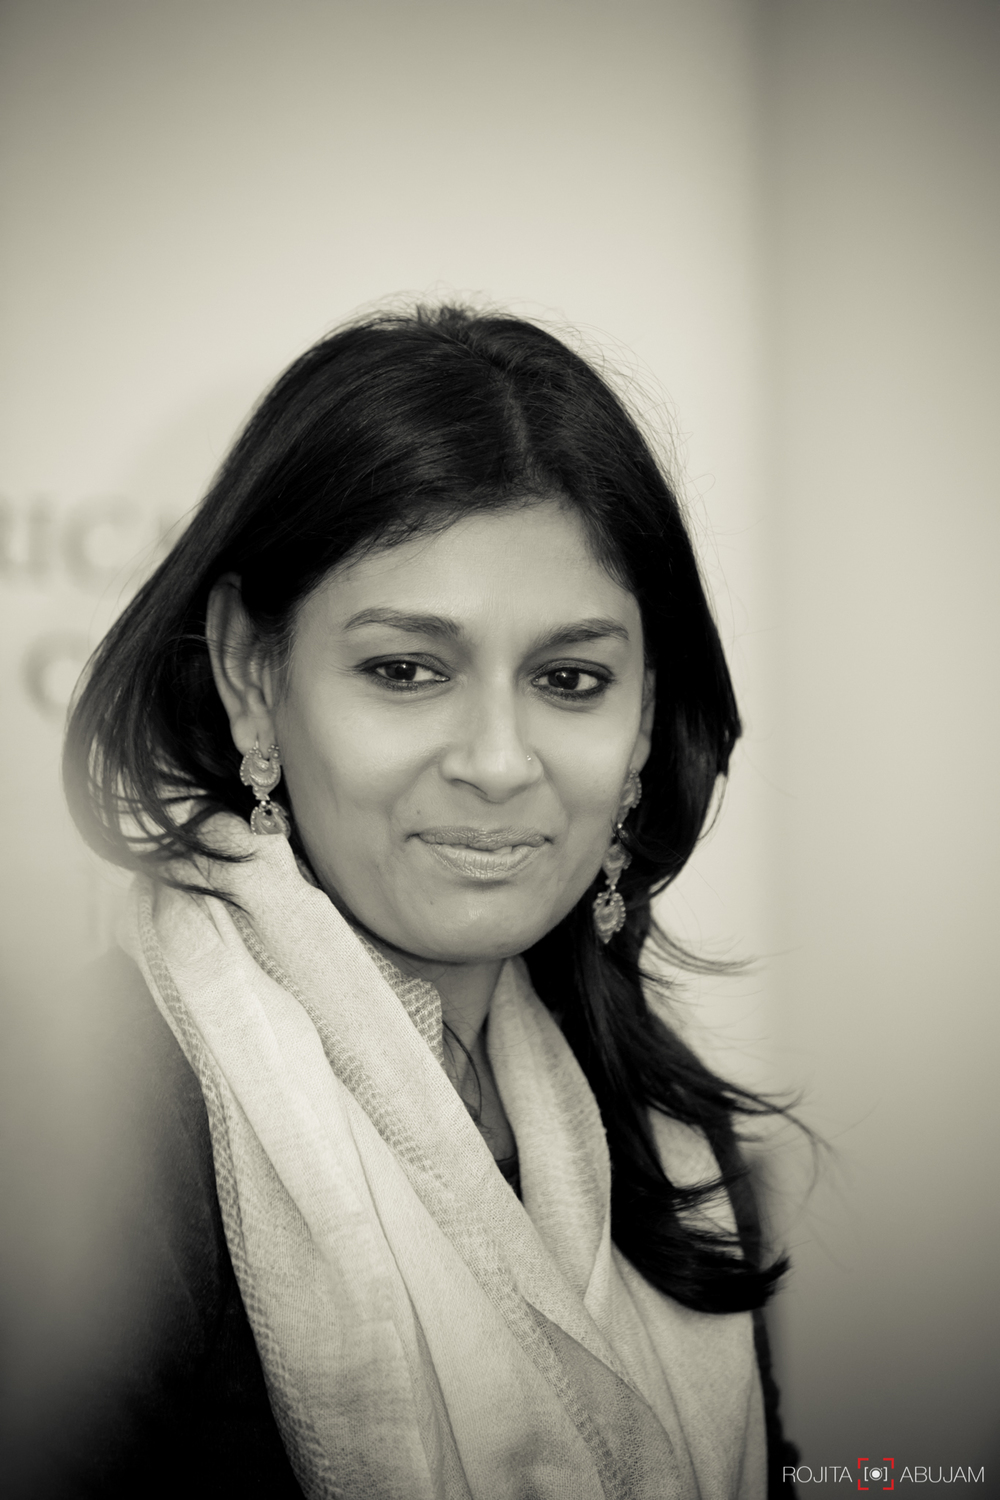 NANDITA DAS - Award Winning Indian Actress/Director.